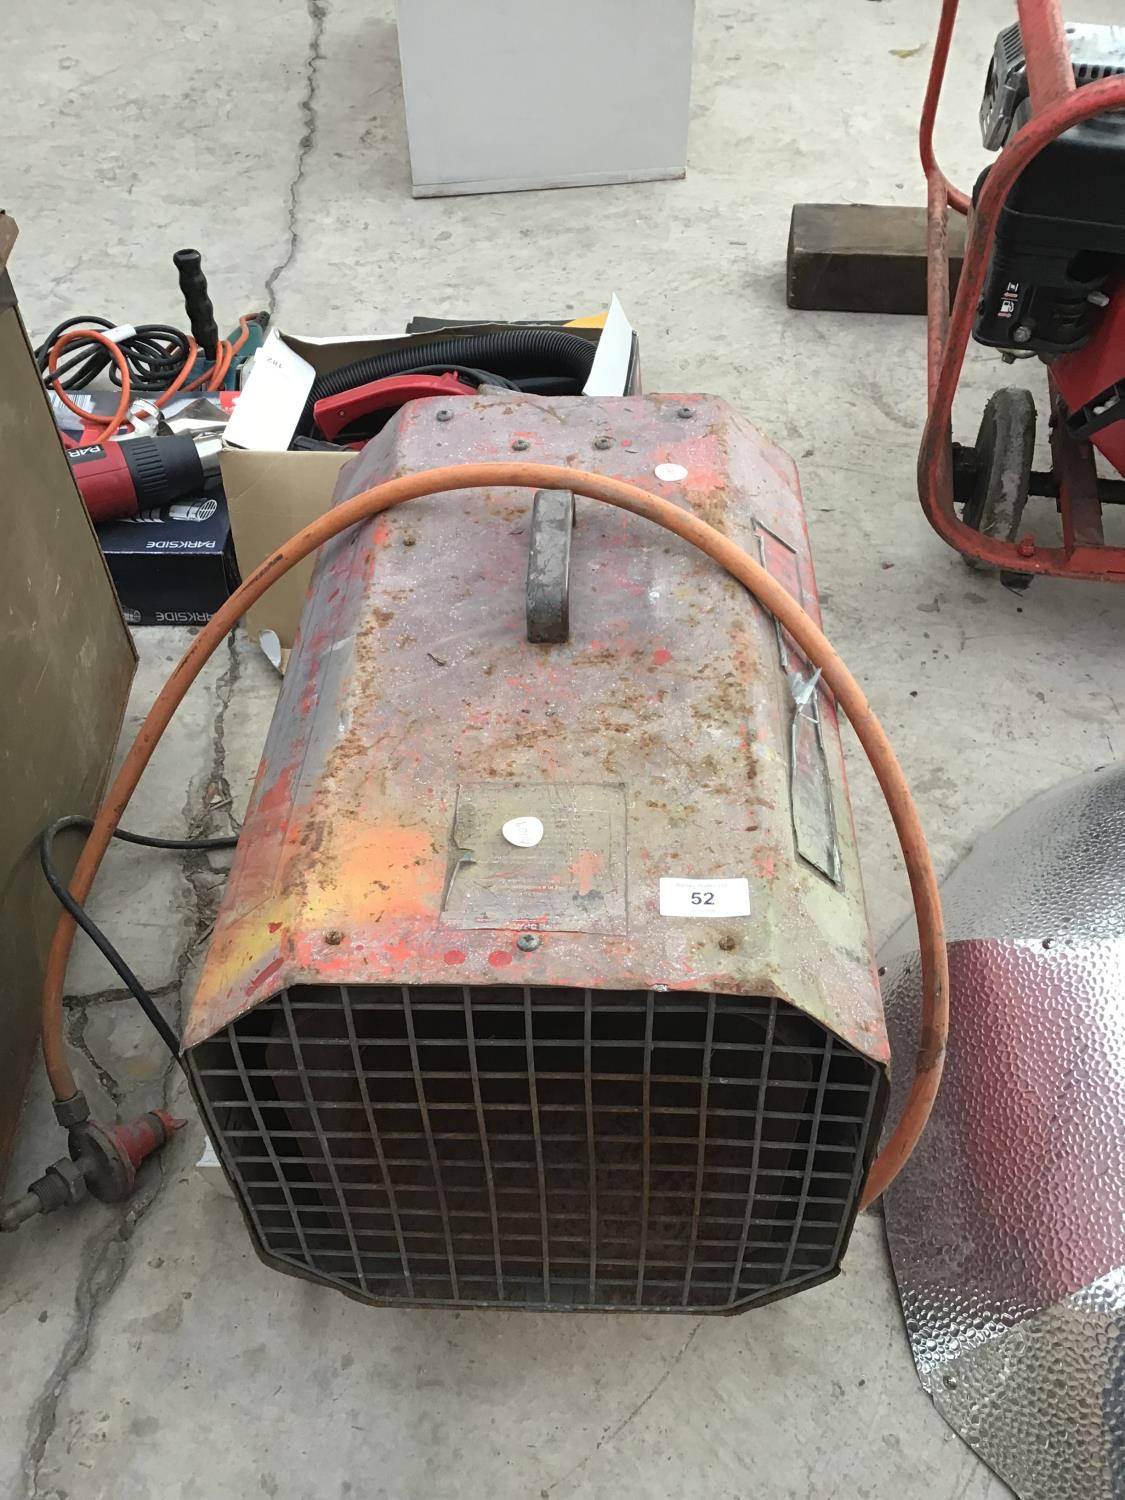 Lot 52 - A SPACE HEATER